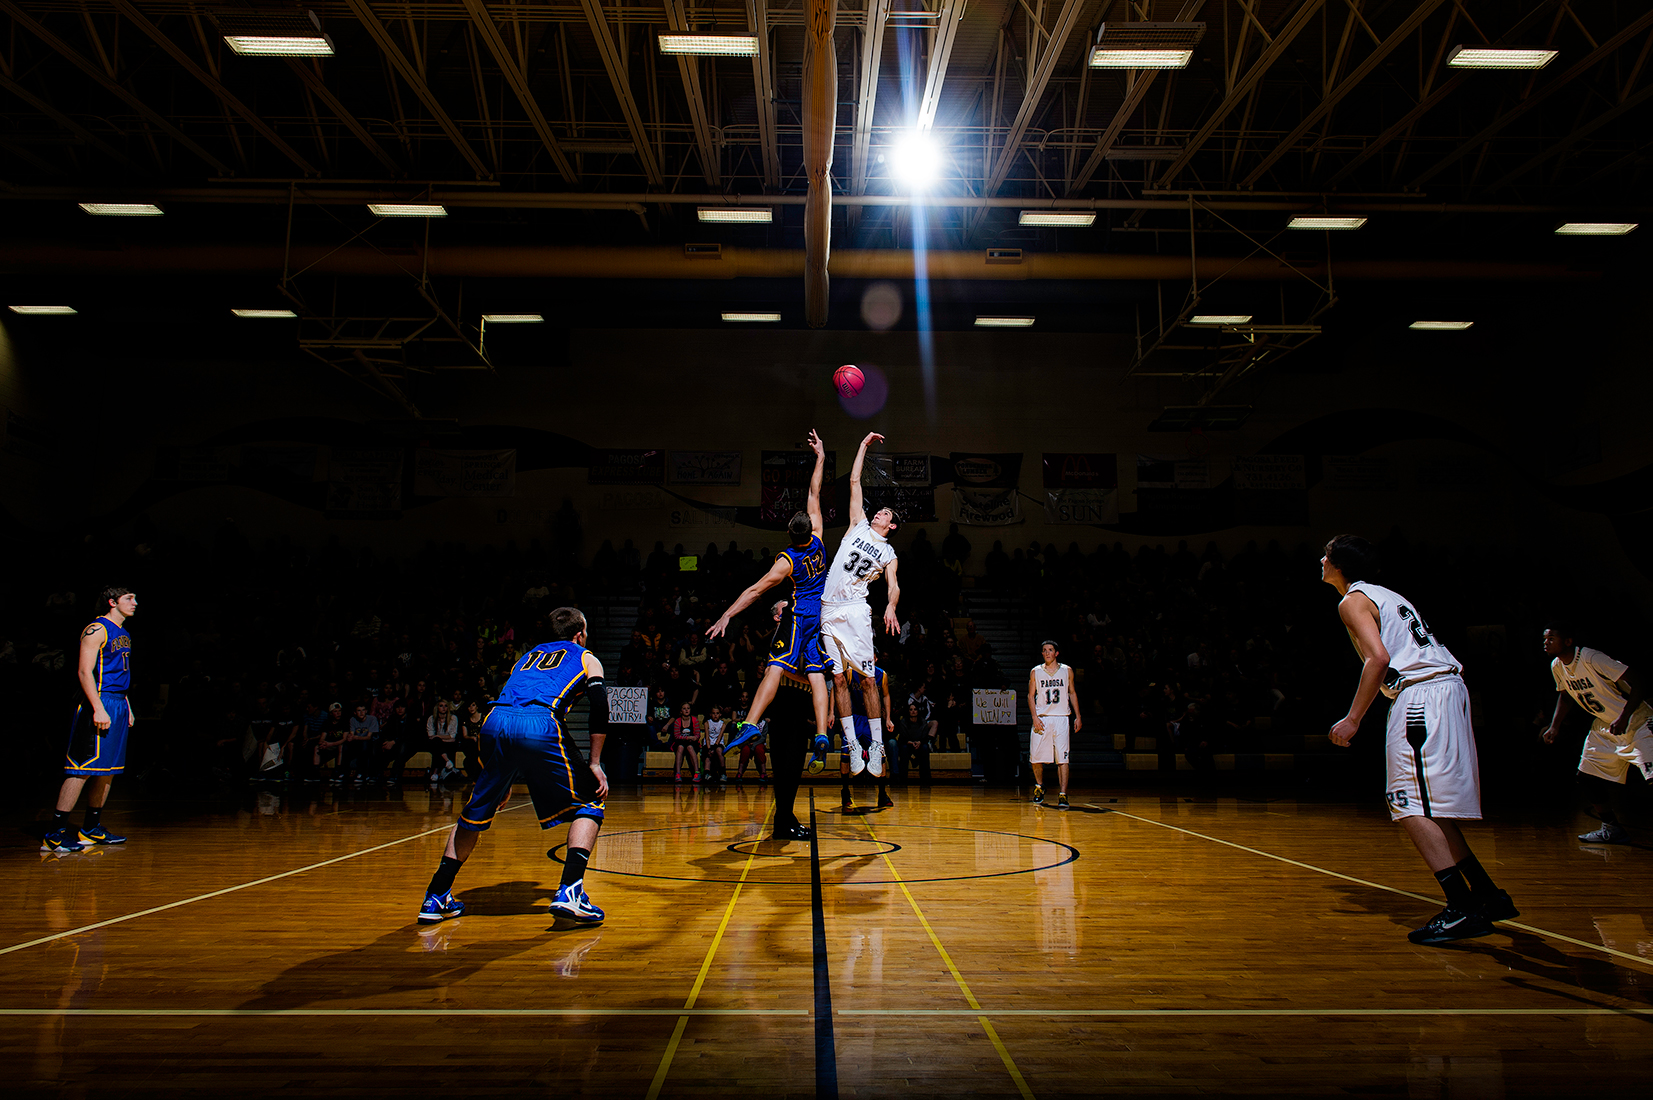 Creative lighting using arena strobes of basketball game tipoff